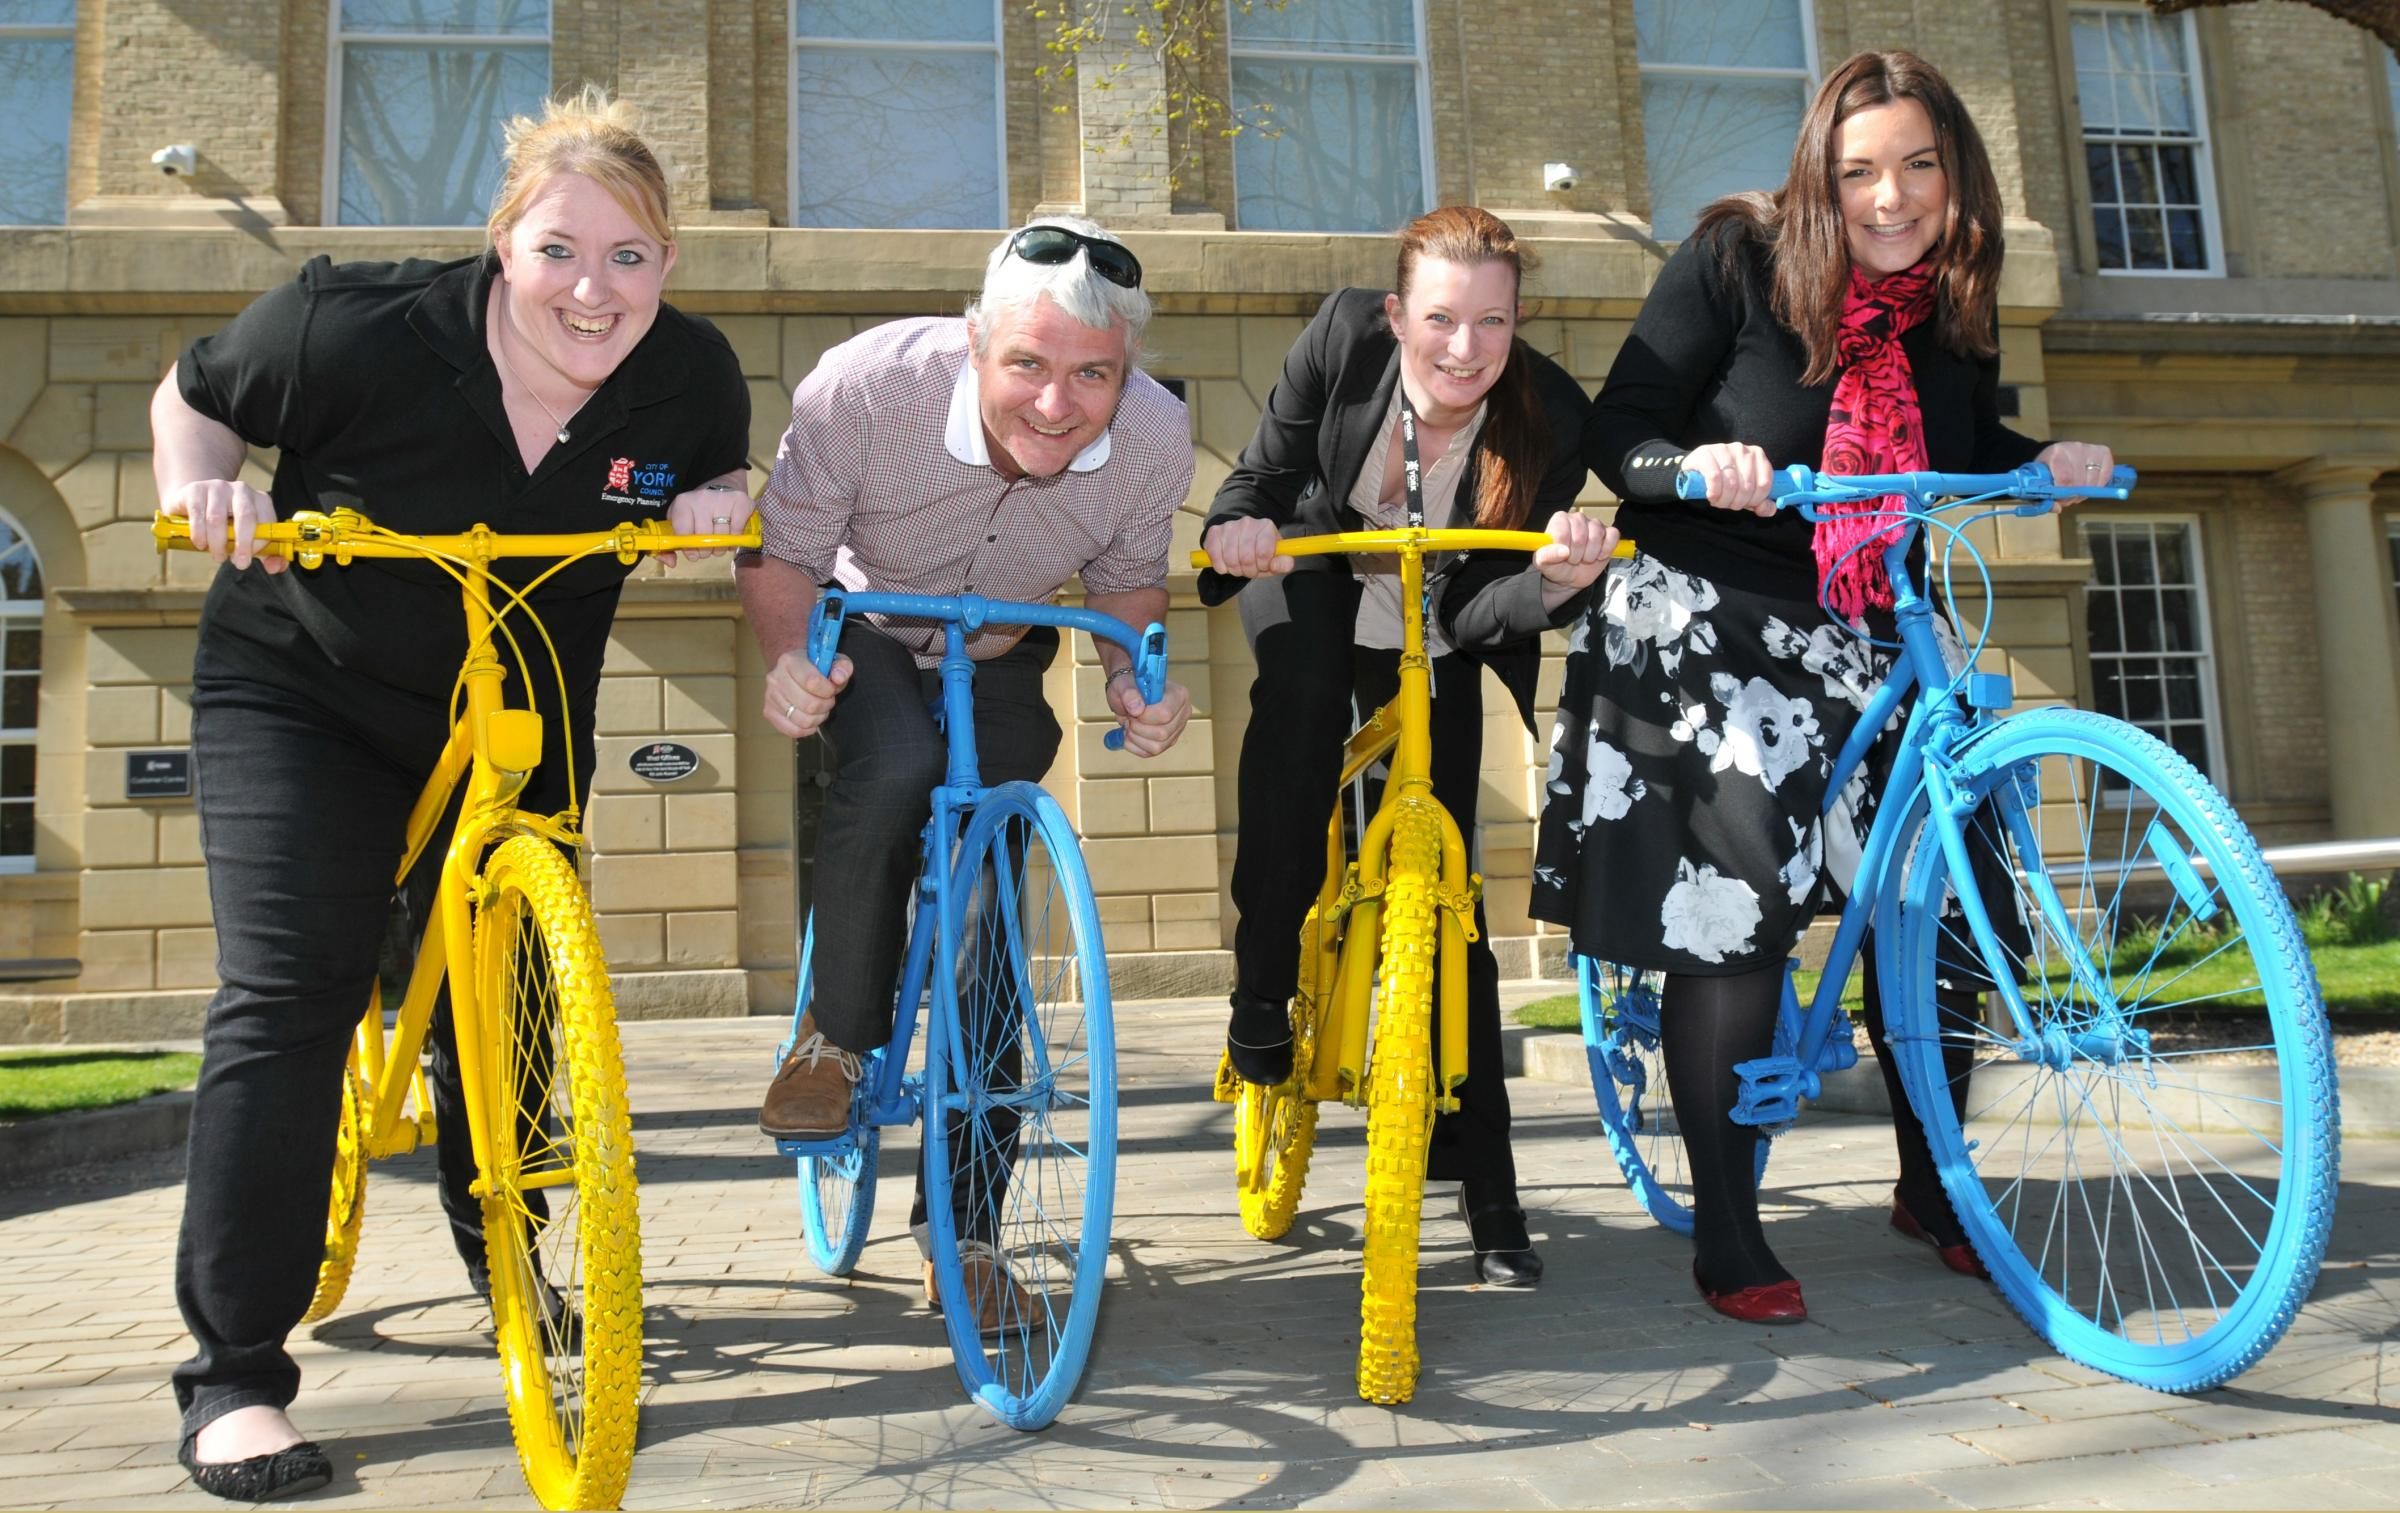 The Tour de Yorkshire project team, from left, Katie Fisher, Stuart Gladstone, Rianca Vogels and Laura Haviland